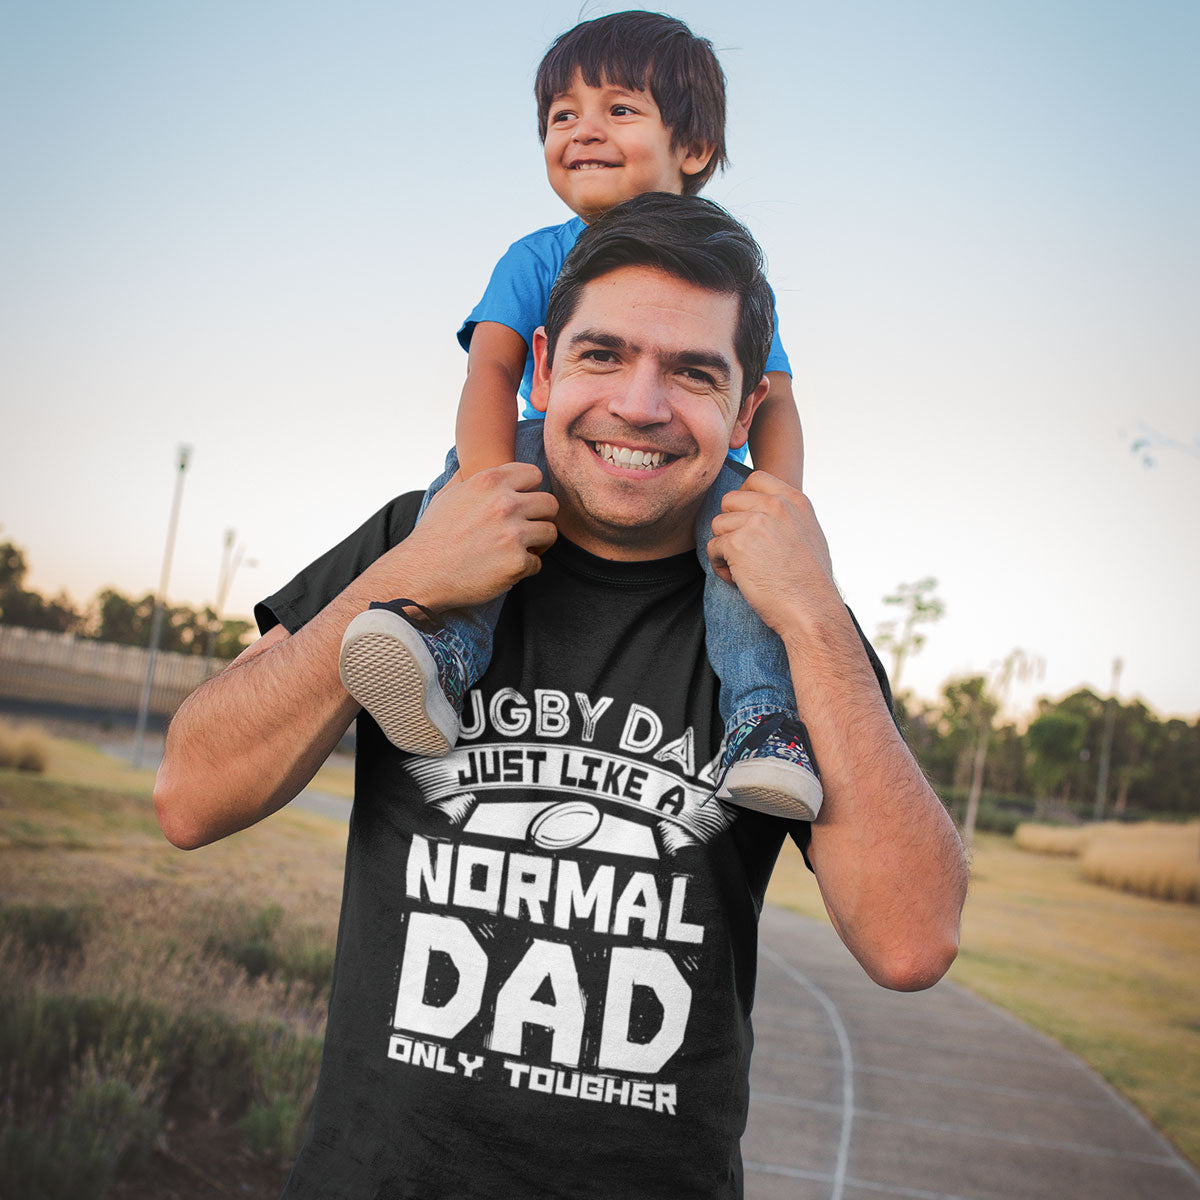 Rugby Dad, Just Like A Normal Dad Only Tougher Tee - First XV rugbystuff.com